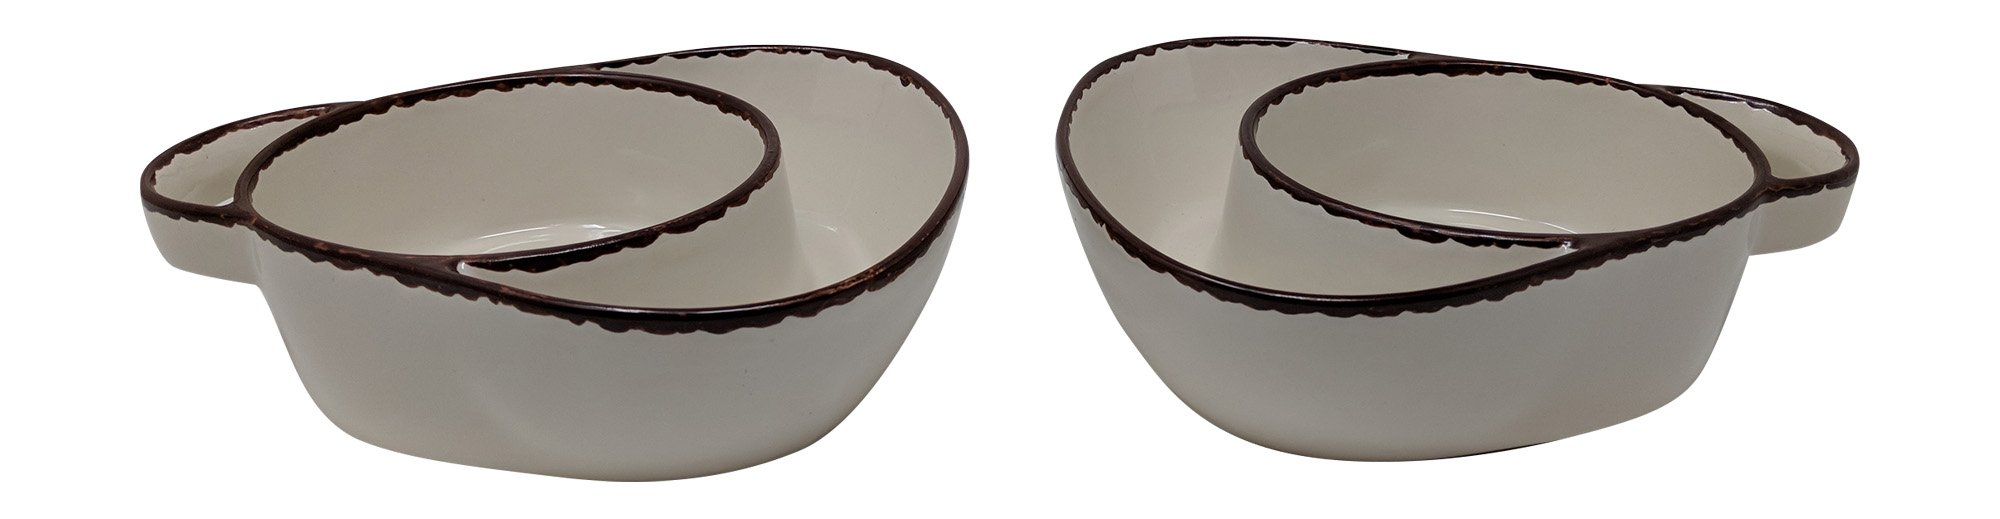 Gianna's Home Set of 2 Rustic Farmhouse Country Stoneware Distressed Soup and Side Chip and Dip Bowls With Handles (Ivory)